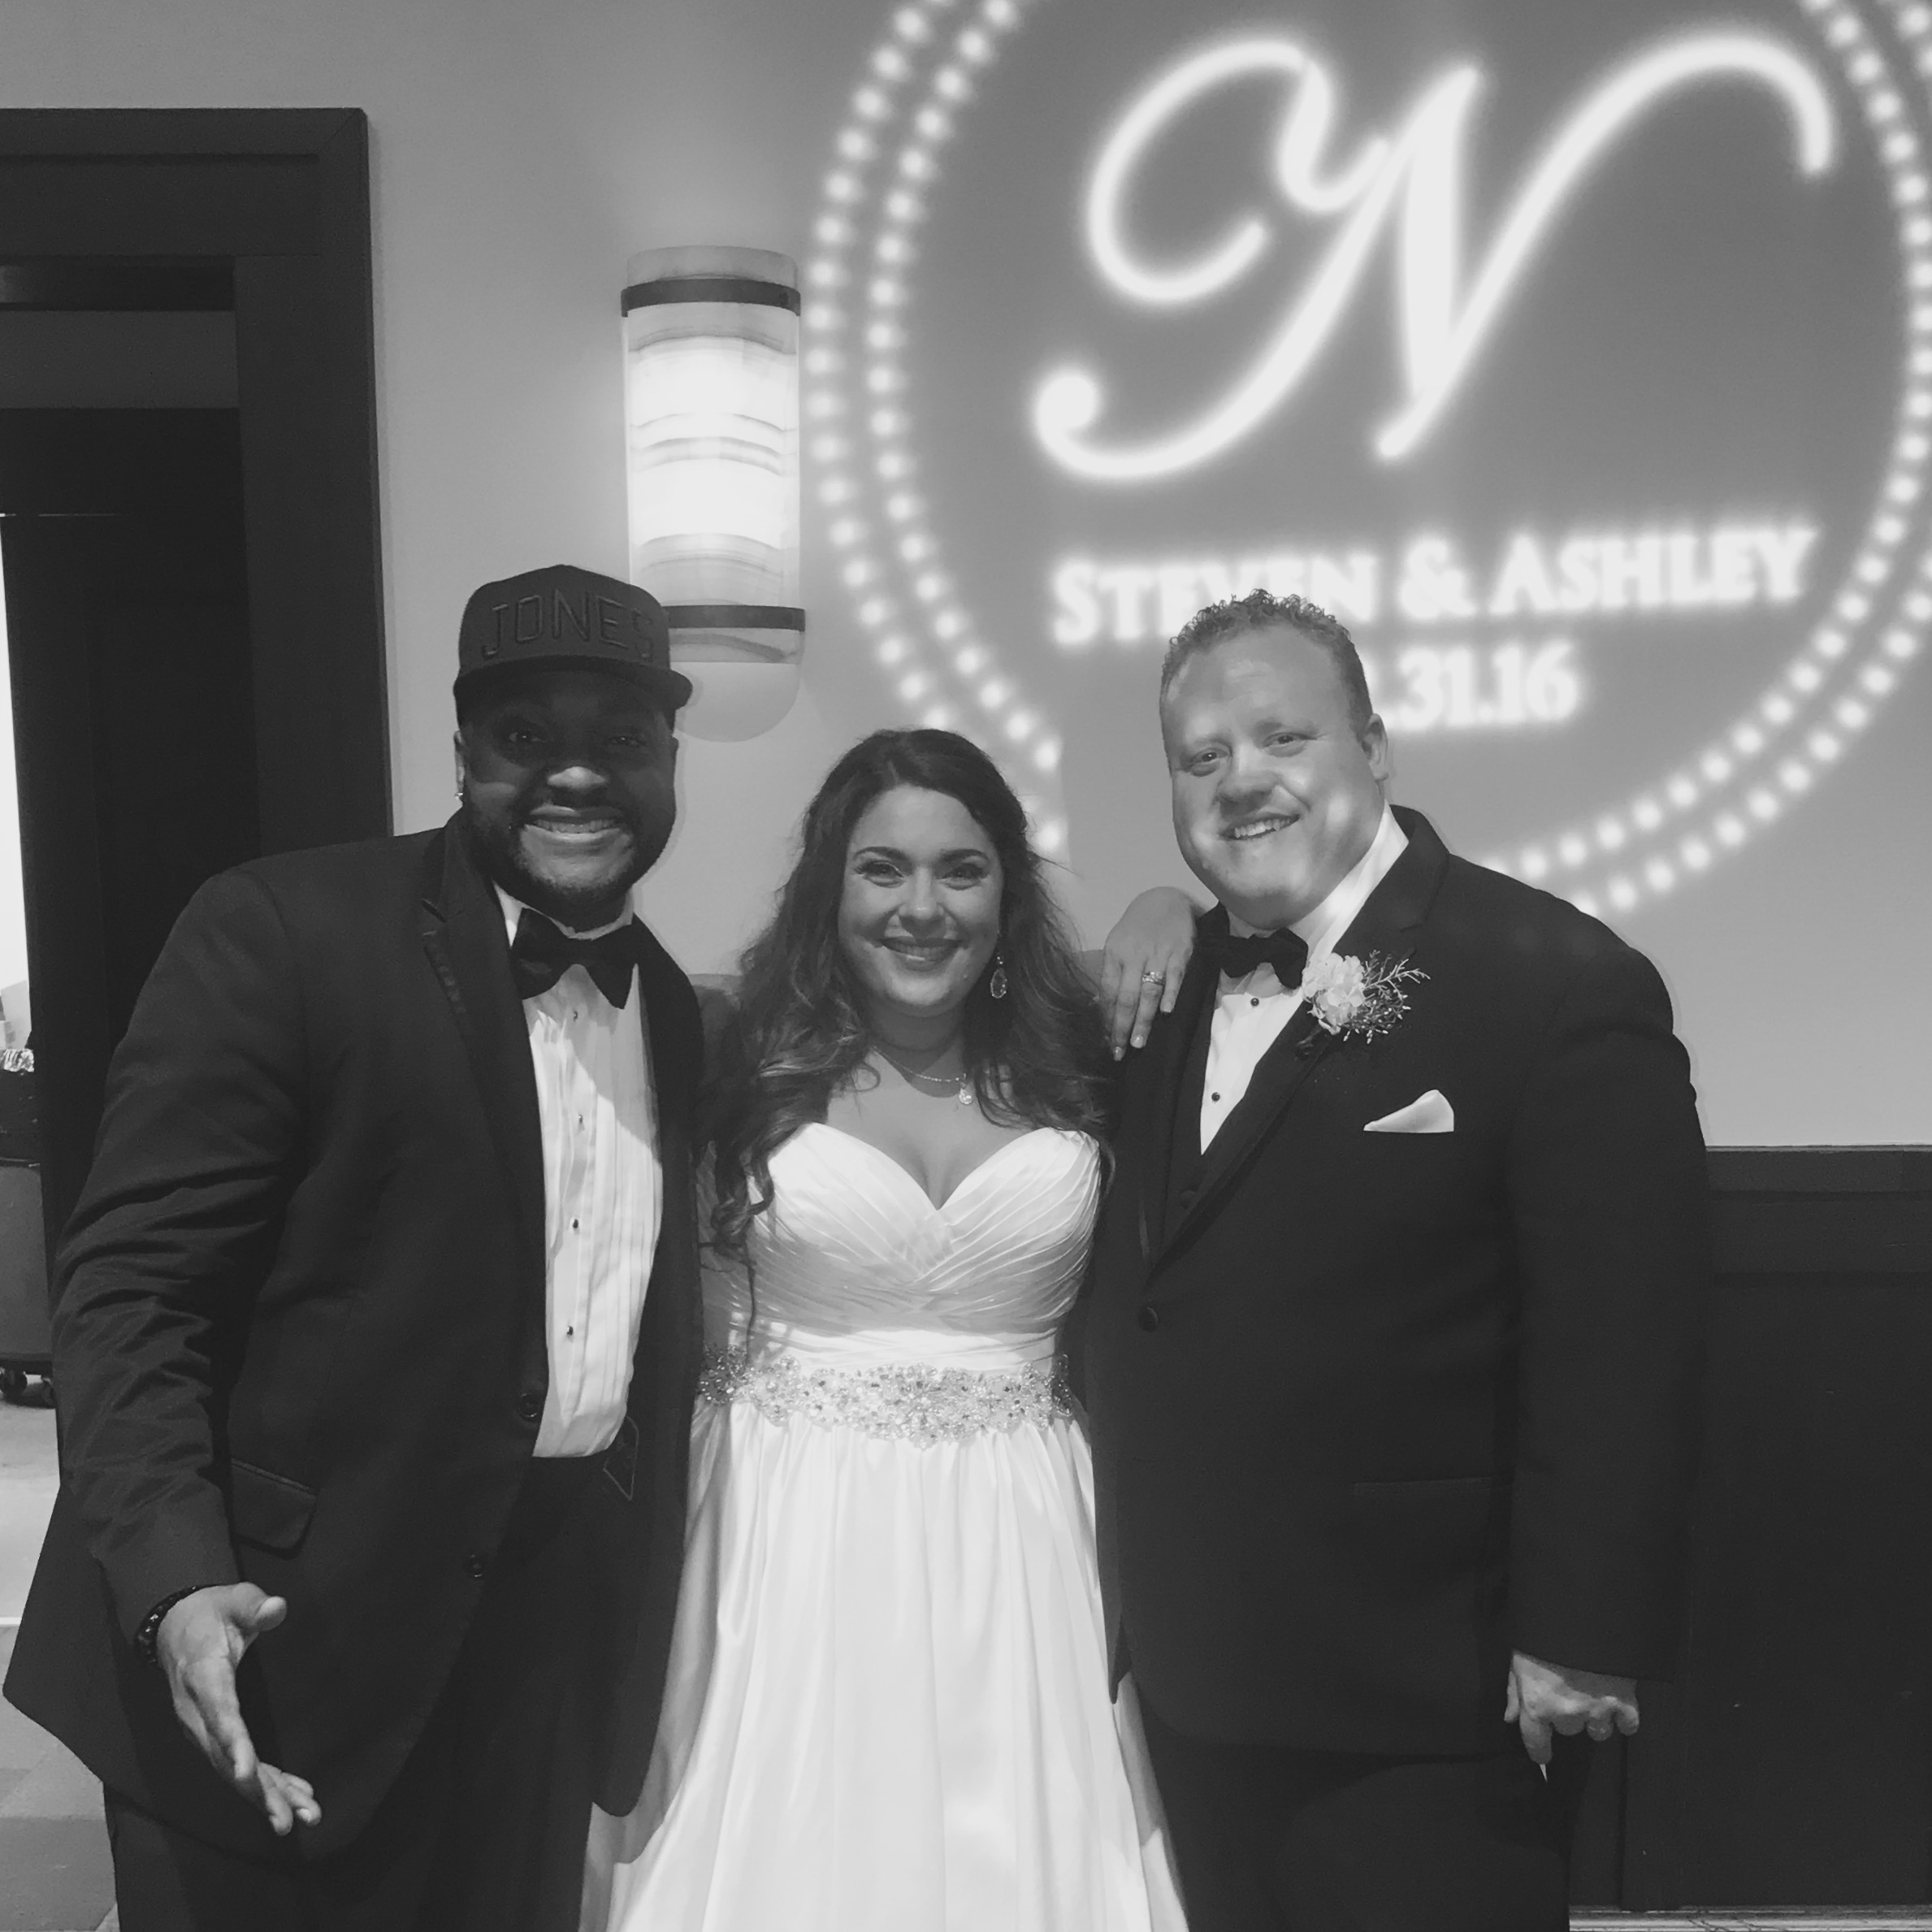 wolinksi norton Wedding by dj d jones mistwood golf club nye 2017.jpg